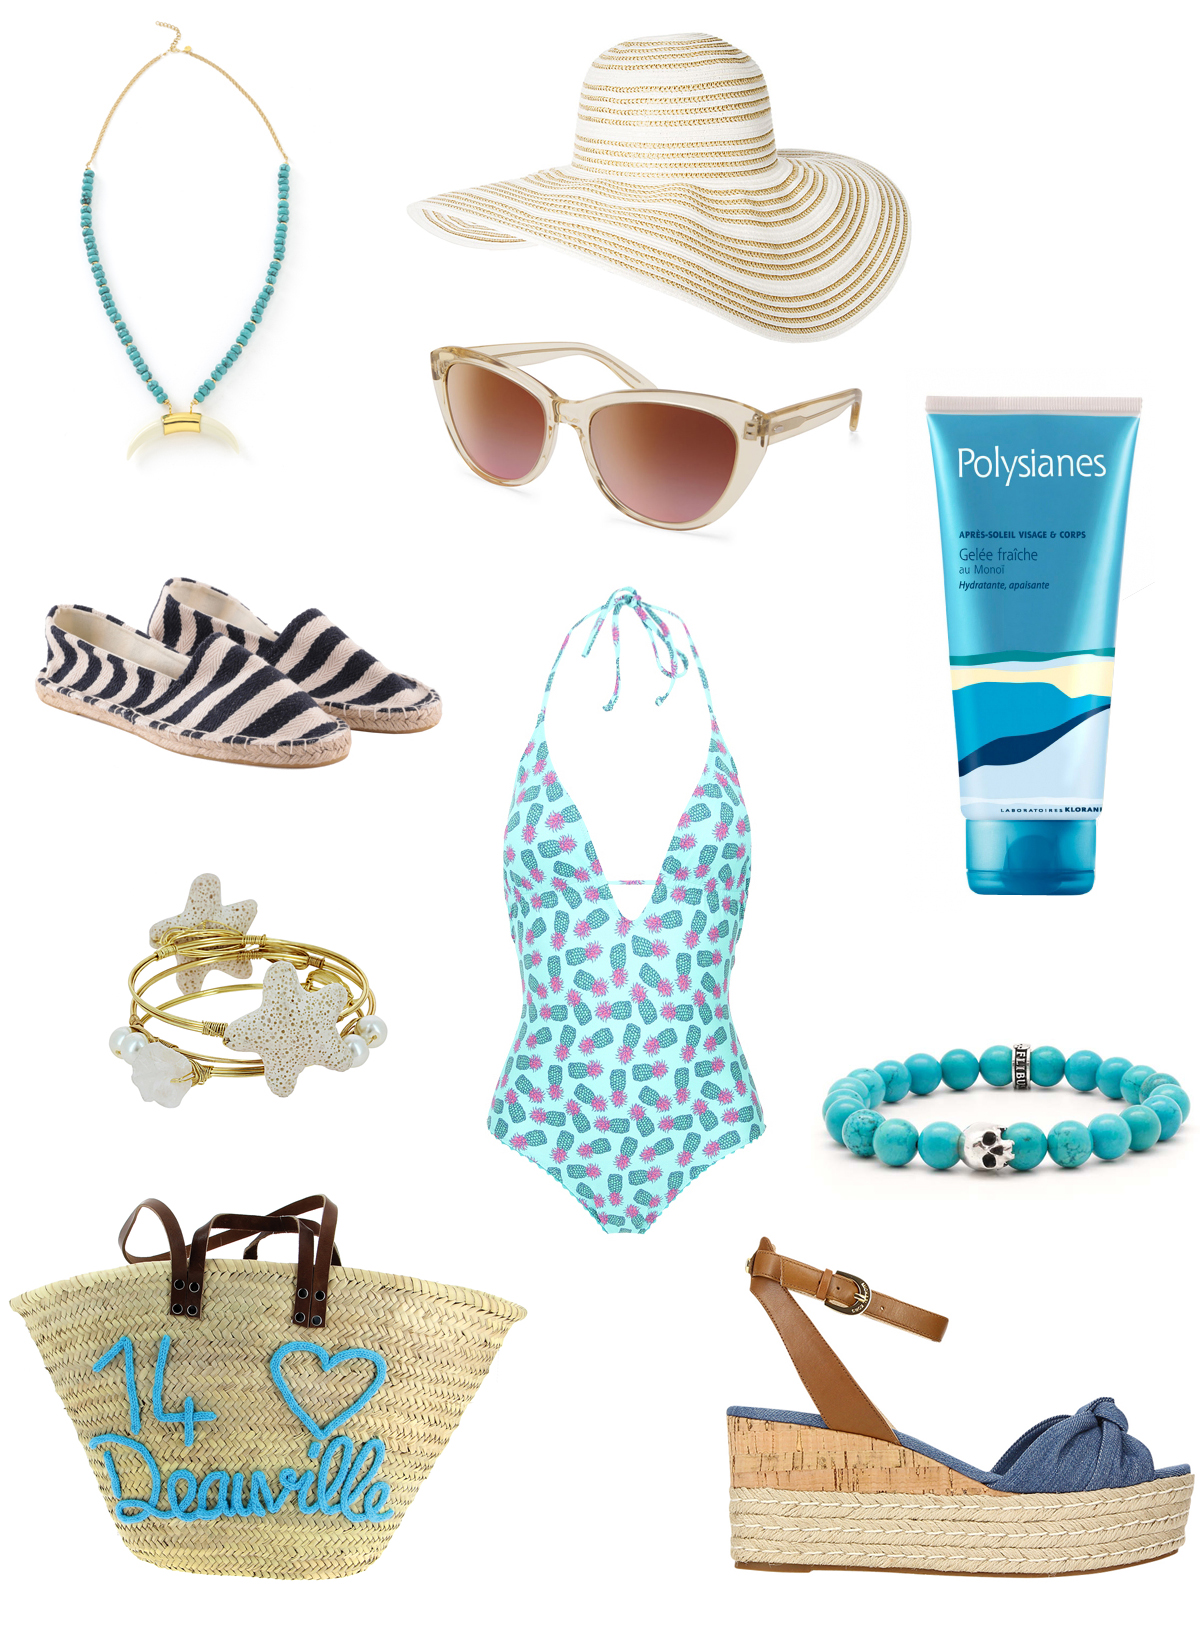 selection-plage-beach-justemagazine-beauty-